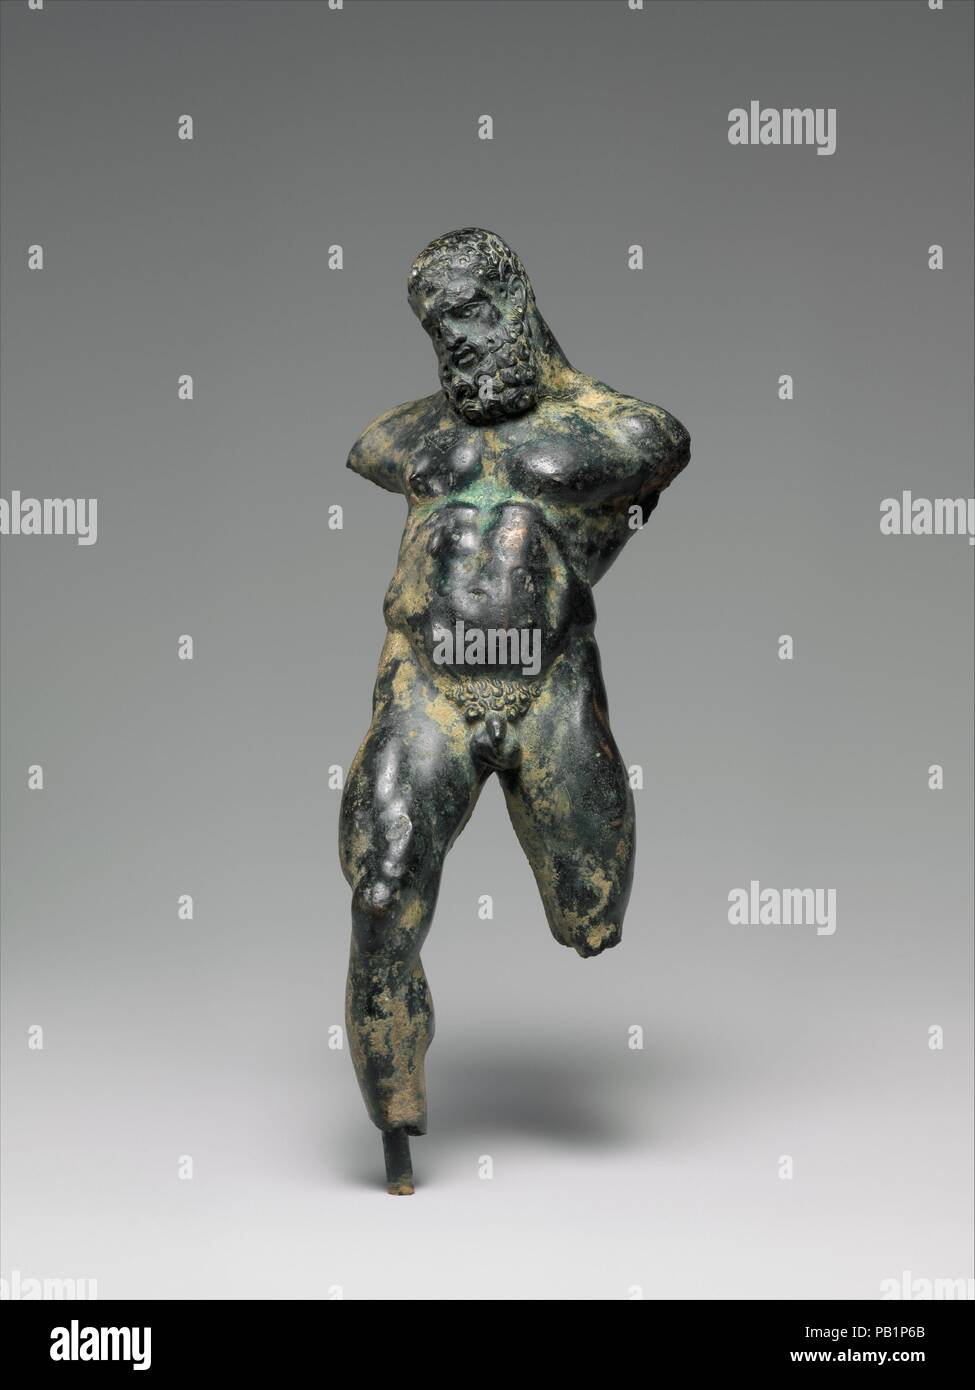 Bronze statuette of drunken Herakles. Culture: Greek. Dimensions: H. 6 1/8 in. (15.60 cm). Date: 3rd-2nd century B.C..  Said to be from Smyrna  The hero lists back, clearly inebriated, his stomach bloated and the muscles of his legs taut as he tries to maintain balance. On analogy with other statuettes of this type, he may have held his club in his left hand and a kantharos (two-handled drinking cup) in his right. Museum: Metropolitan Museum of Art, New York, USA. - Stock Image